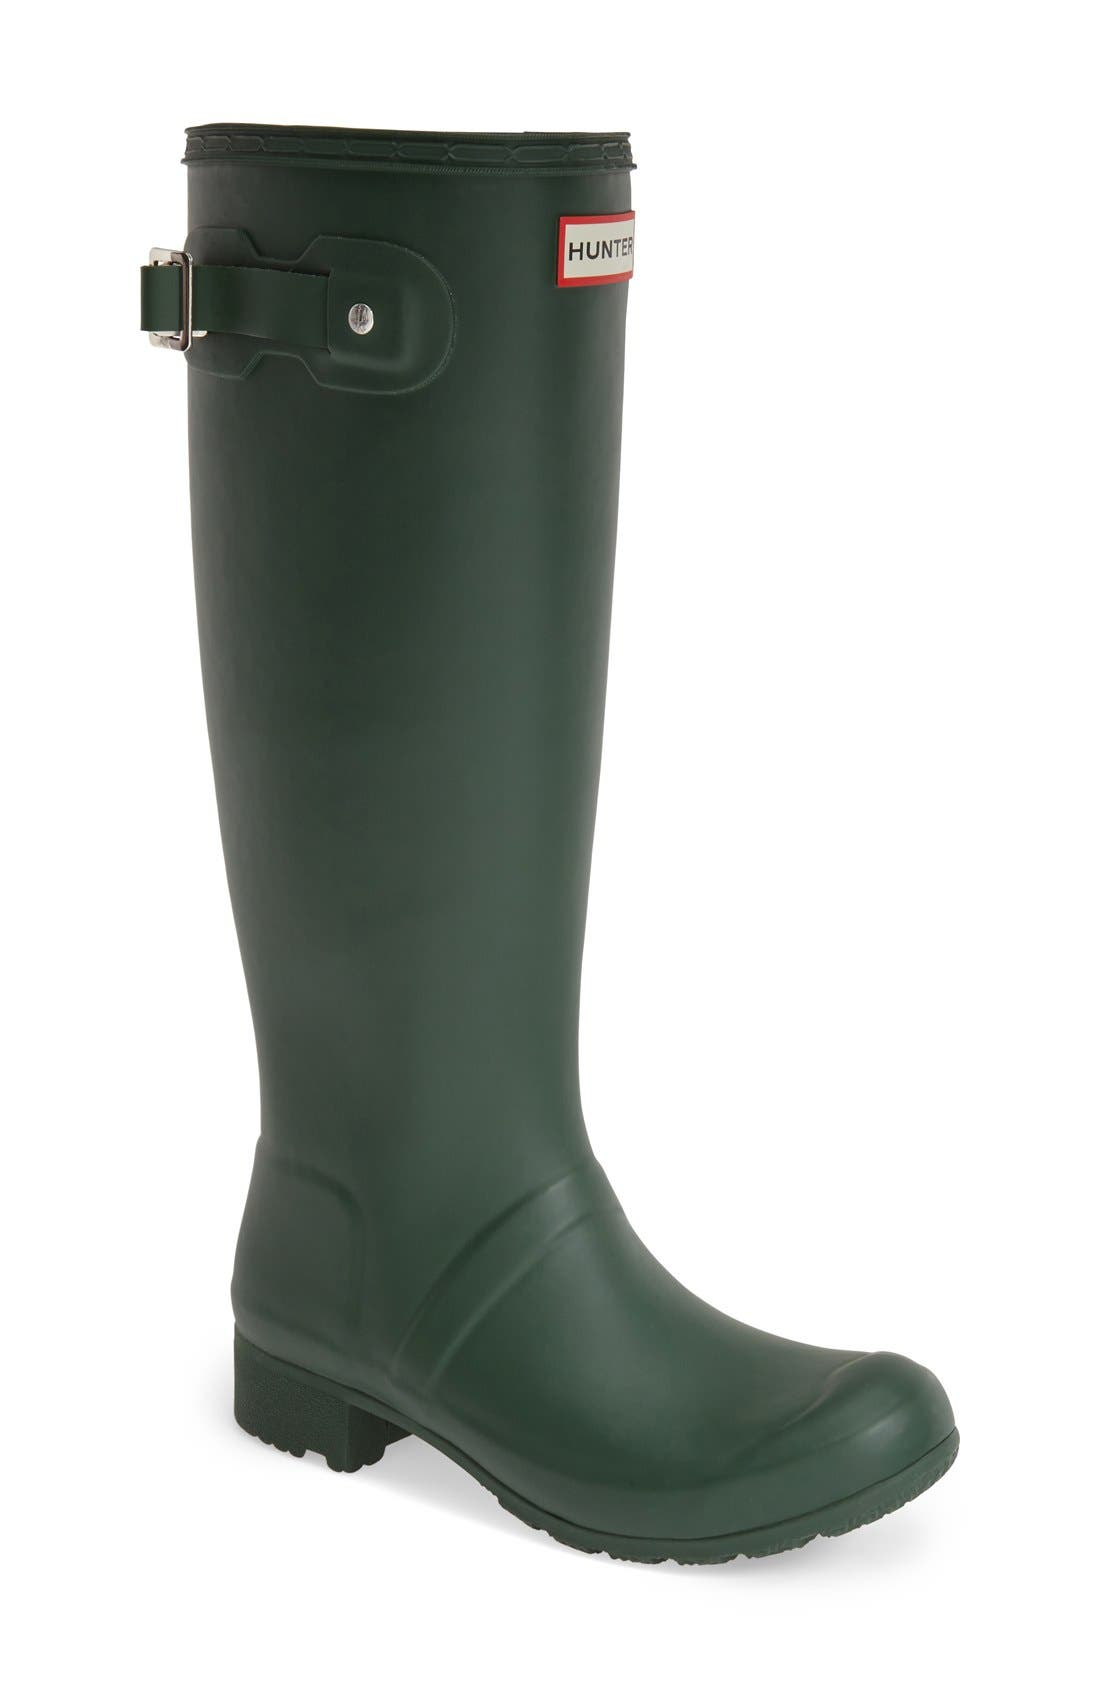 'Tour' Packable Rain Boot,                             Main thumbnail 1, color,                             Hunter Green